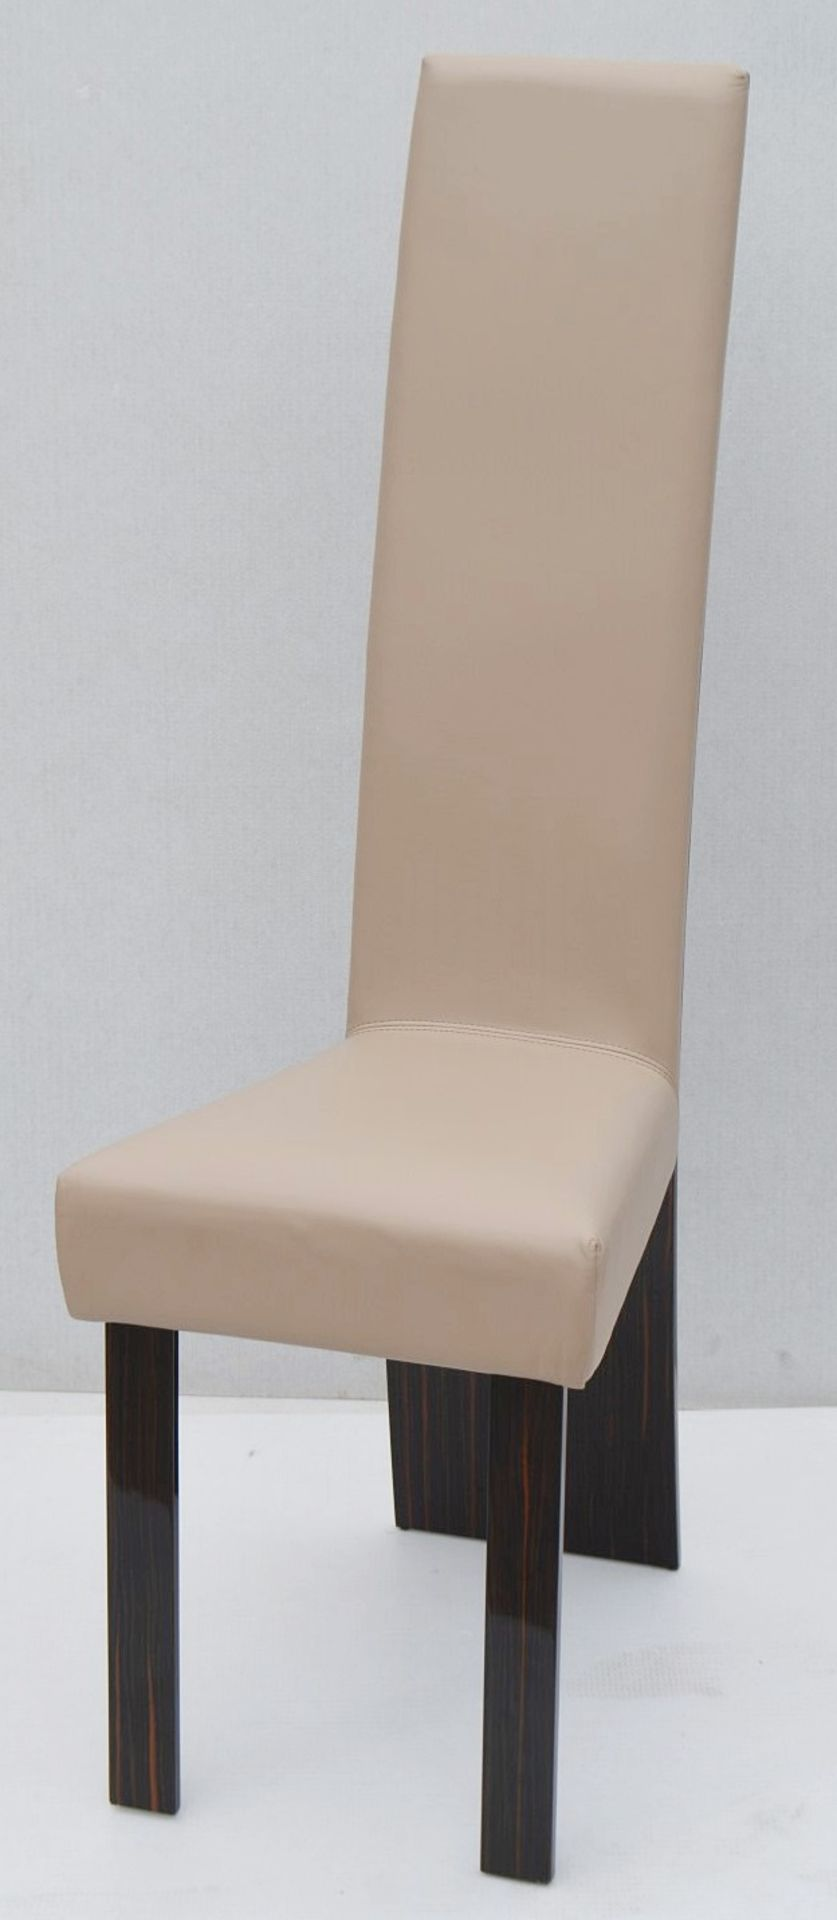 A Pair Of REFLEX 'New York-2' Designer Leather Upholstered High-back Chairs - Original RRP £2,578 - Image 4 of 8